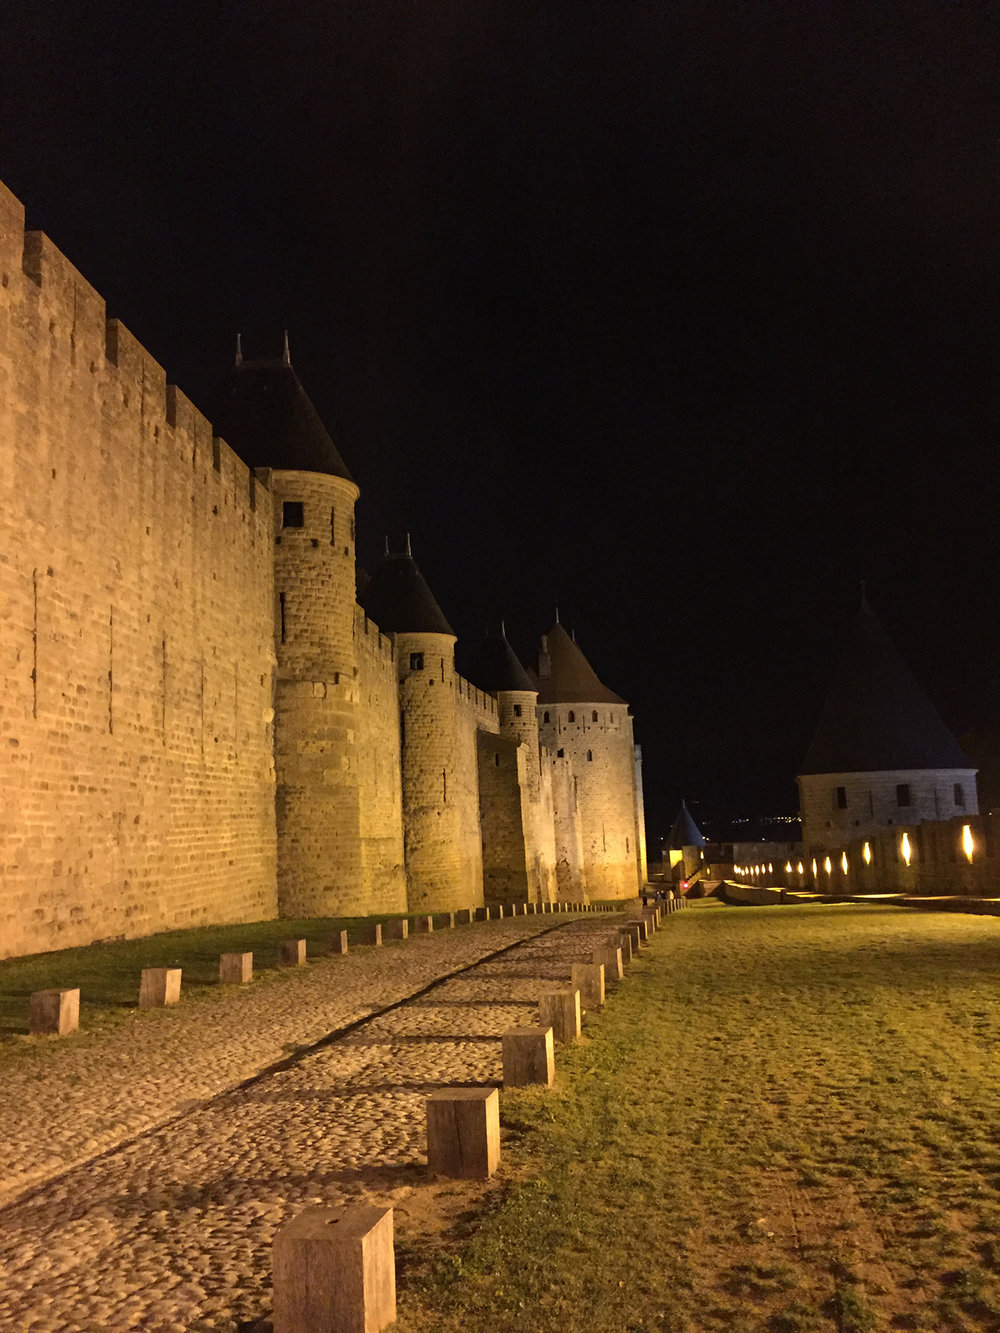 Lices Hautes, in between the two fortified walls